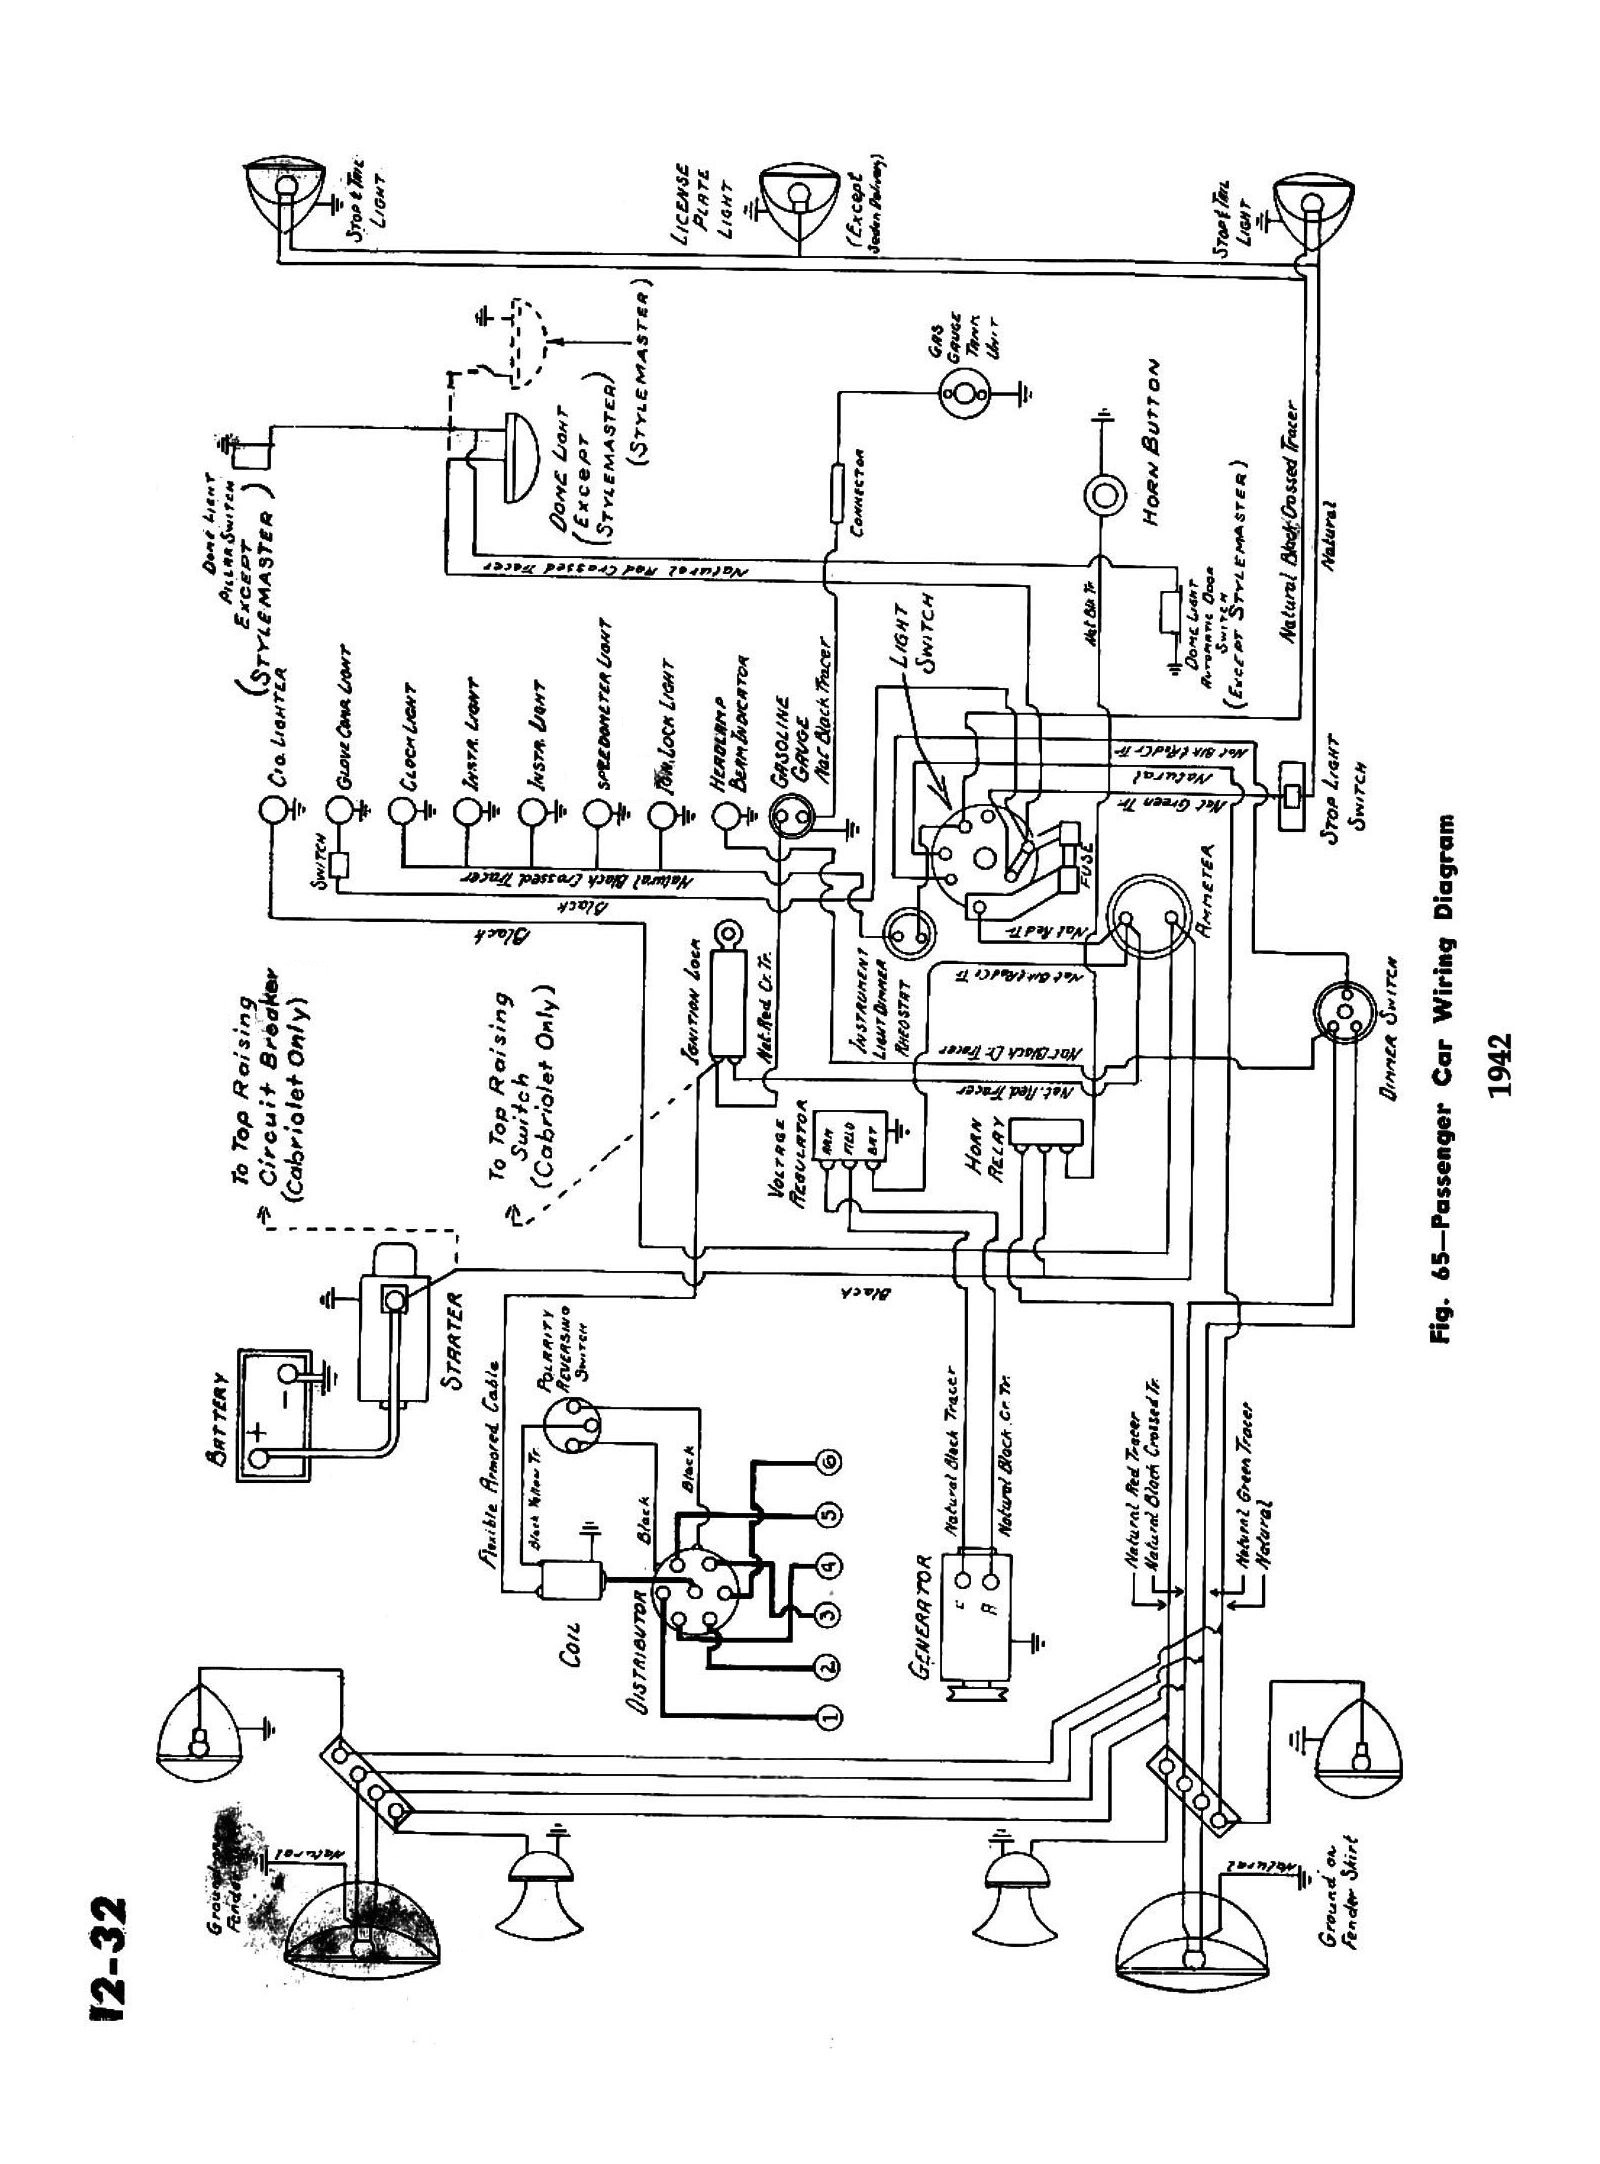 1960 Dodge D100 Wiring Harness Diagram Car Fuse Box 1968 Chevy Diagrams Rh Oldcarmanualproject Com 1970